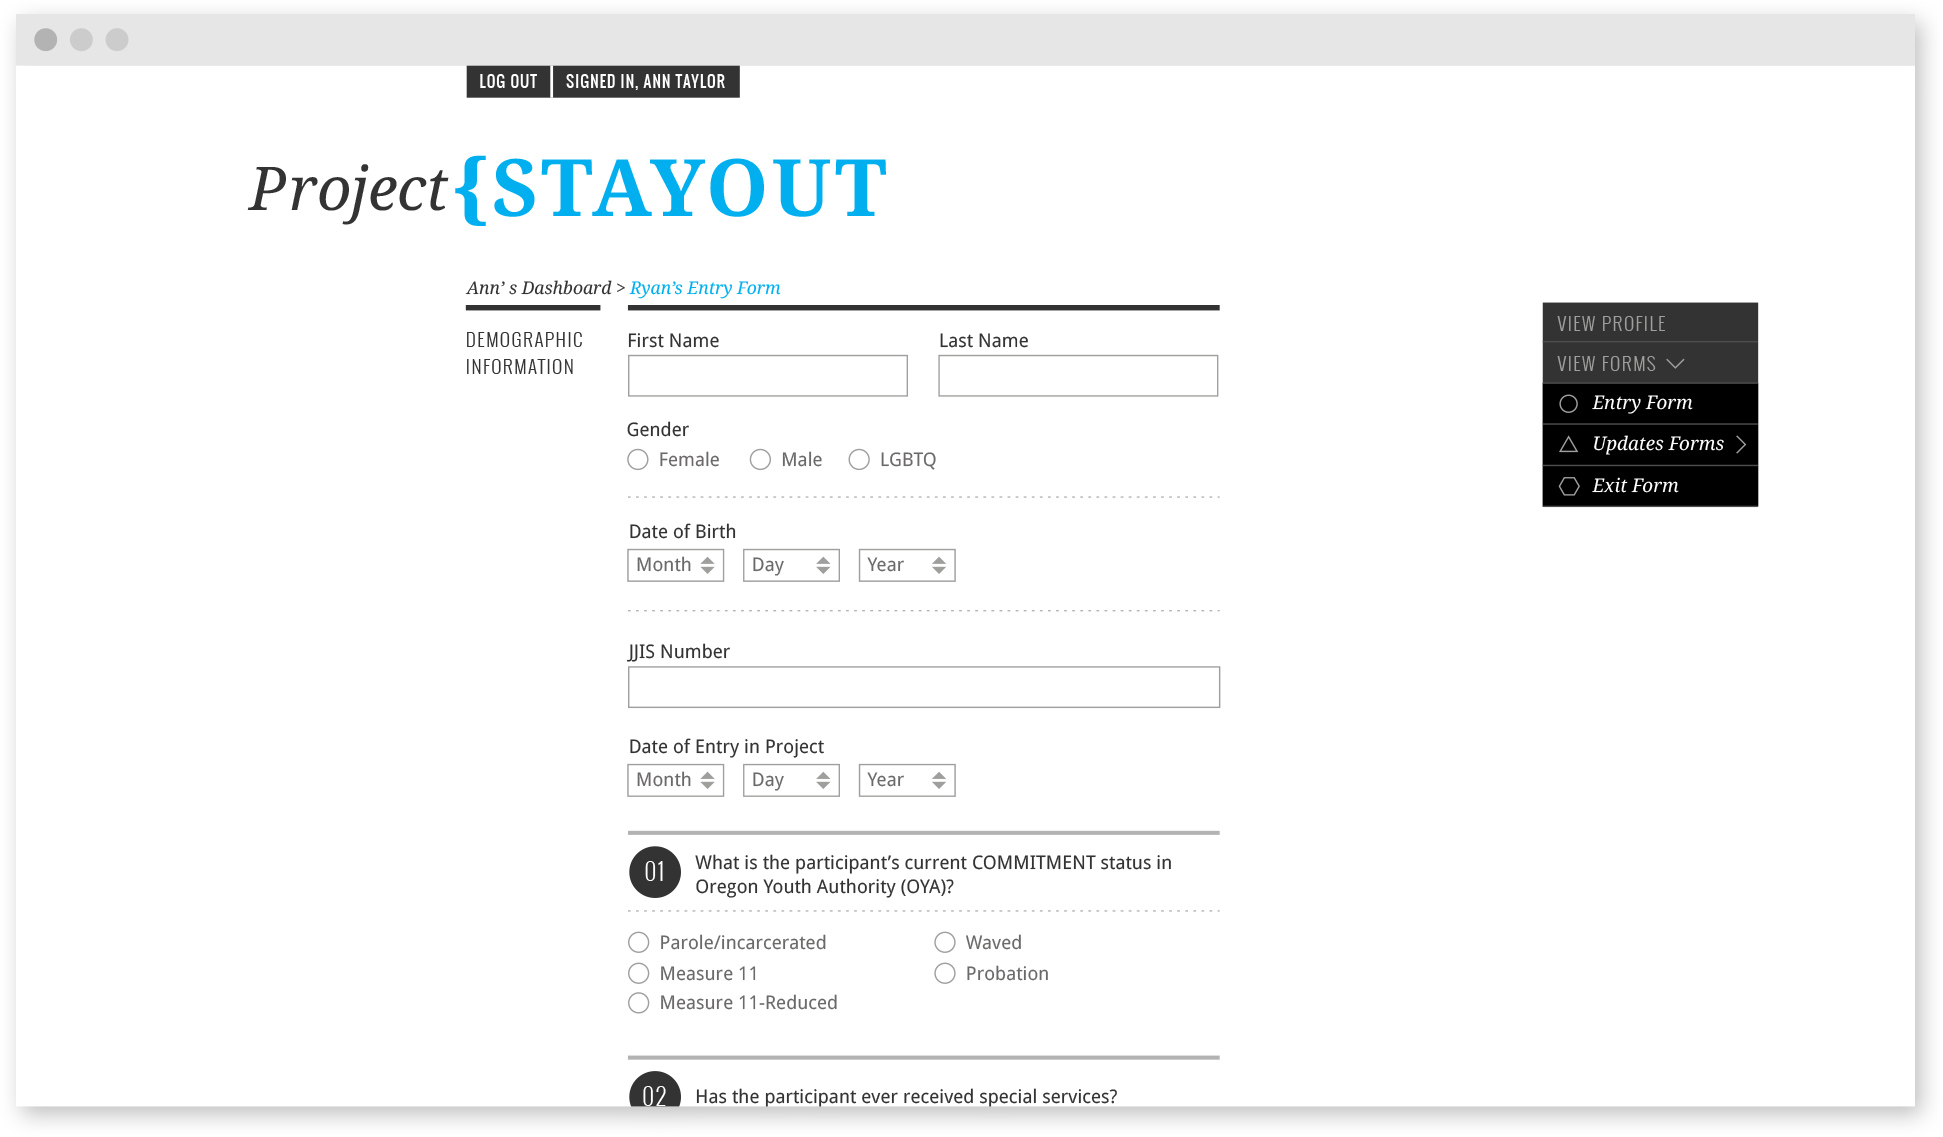 Project STAYOUT Form